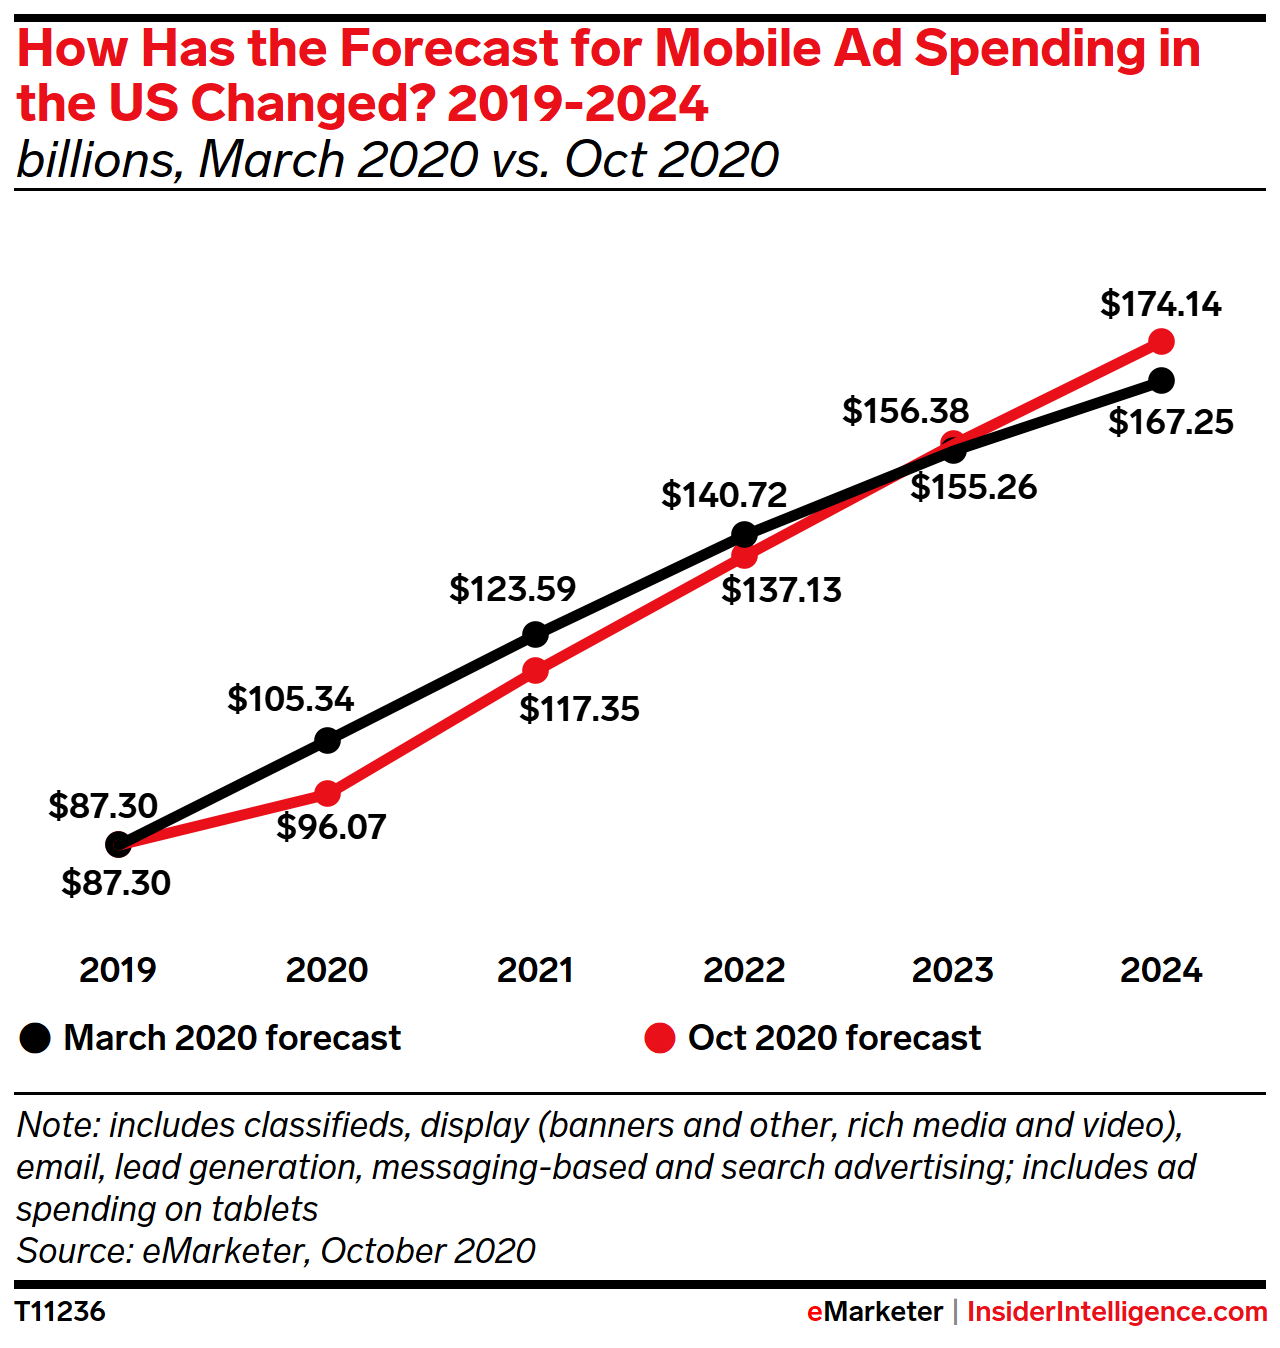 How Has the Mobile Ad Spending Forecast in the US Changed? 2019-2024 (billions)